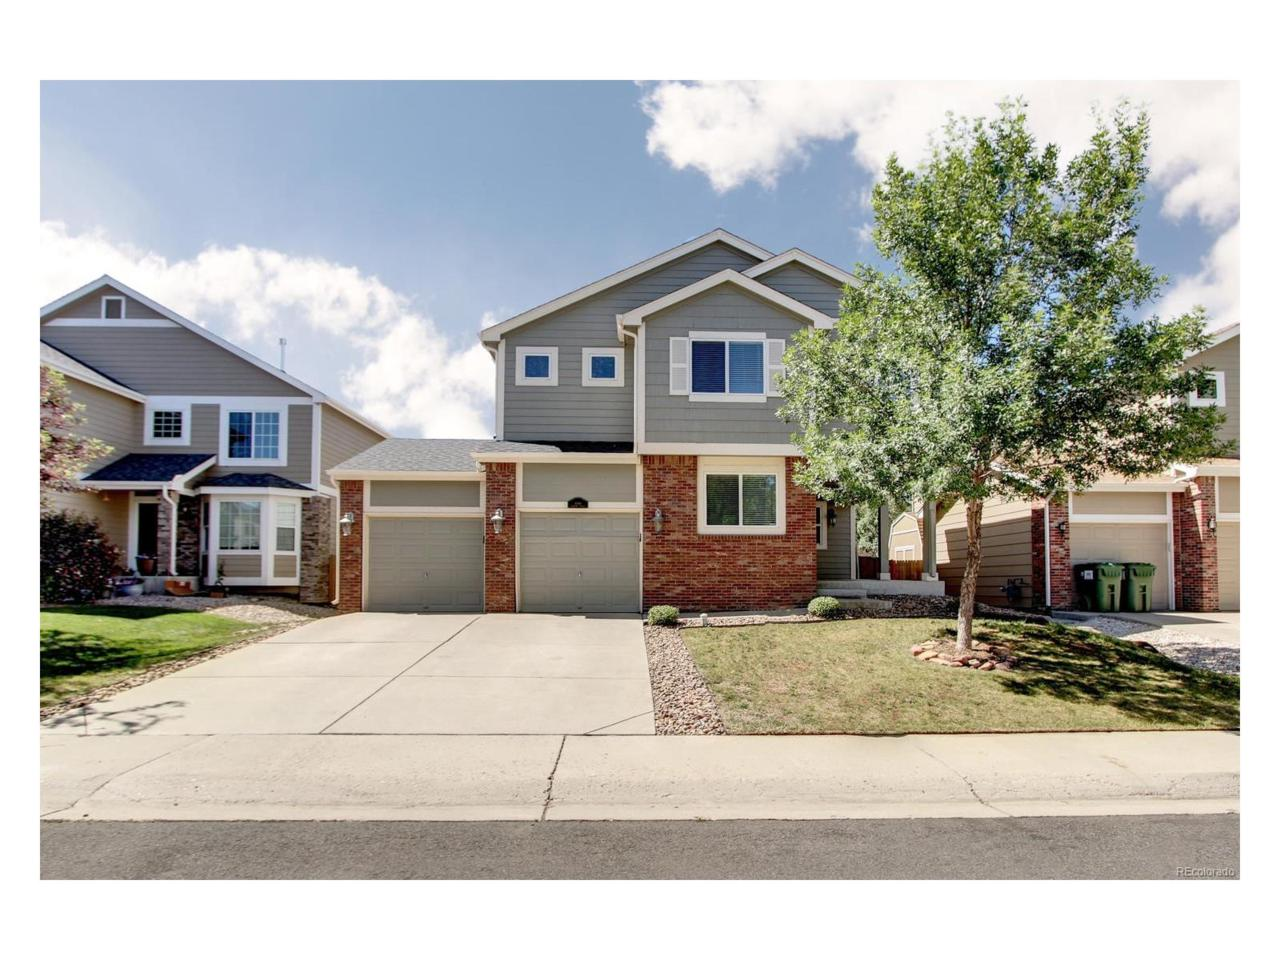 6300 Sparrow Circle, Firestone, CO 80504 (MLS #2650637) :: 8z Real Estate